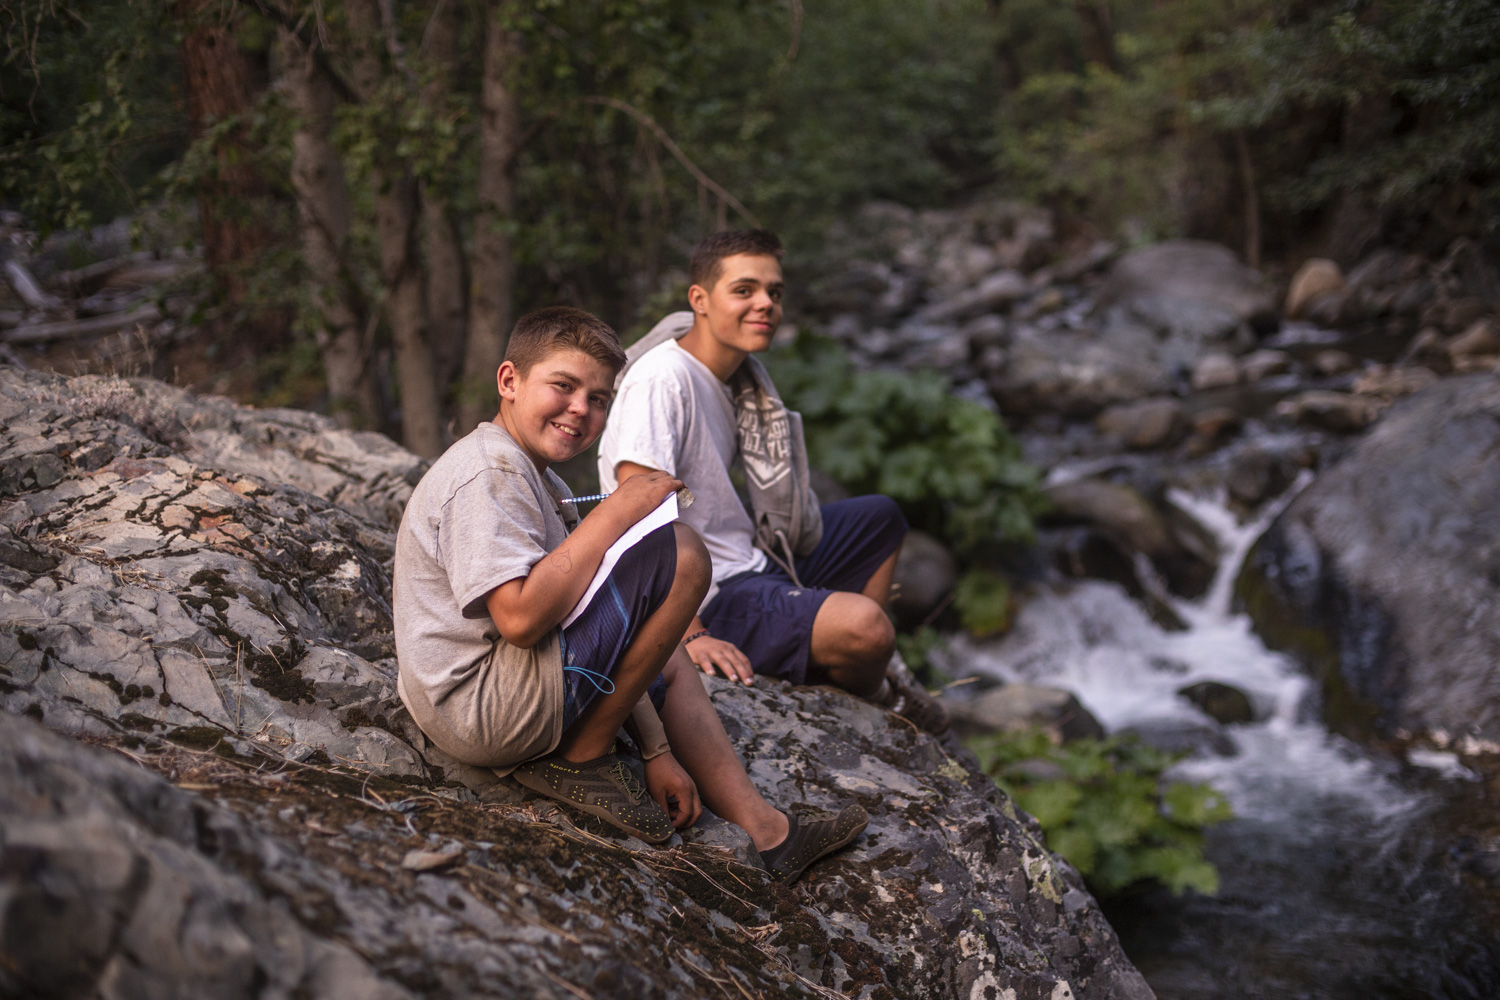 Summer camp can help your son build his social competence.